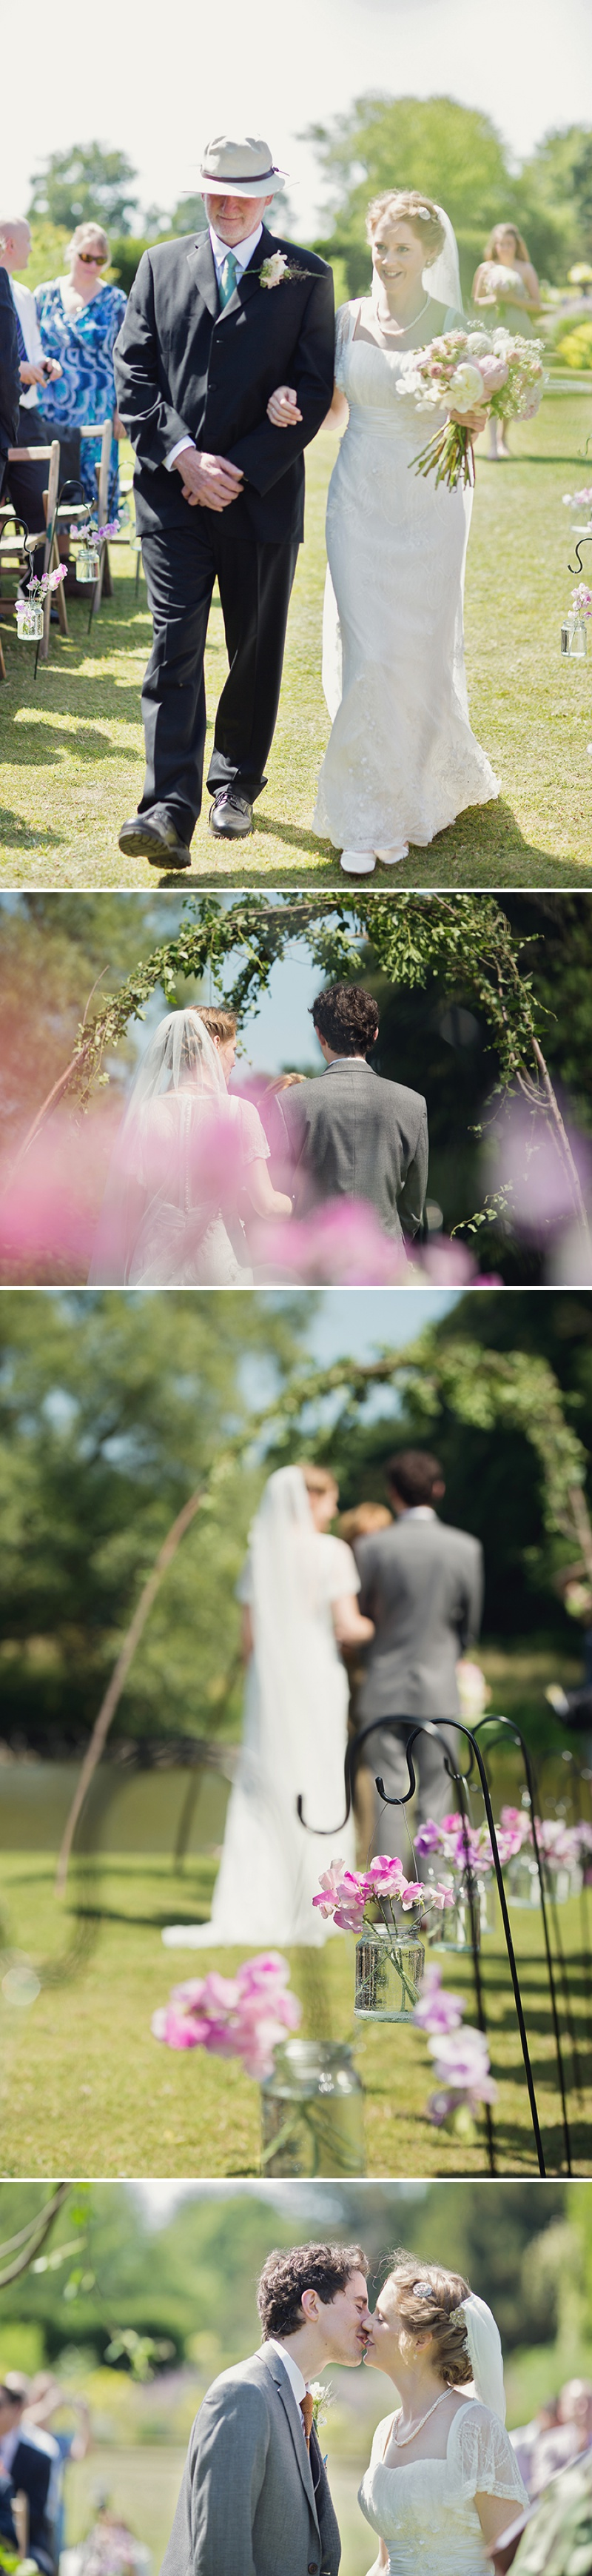 A Beautiful Vintage English Countryside Wedding At Narborough Hall Gardens In Norfolk With An Anoushka G Wedding Dress And An Oversized Pink Peony And Rose Bouquet._0007